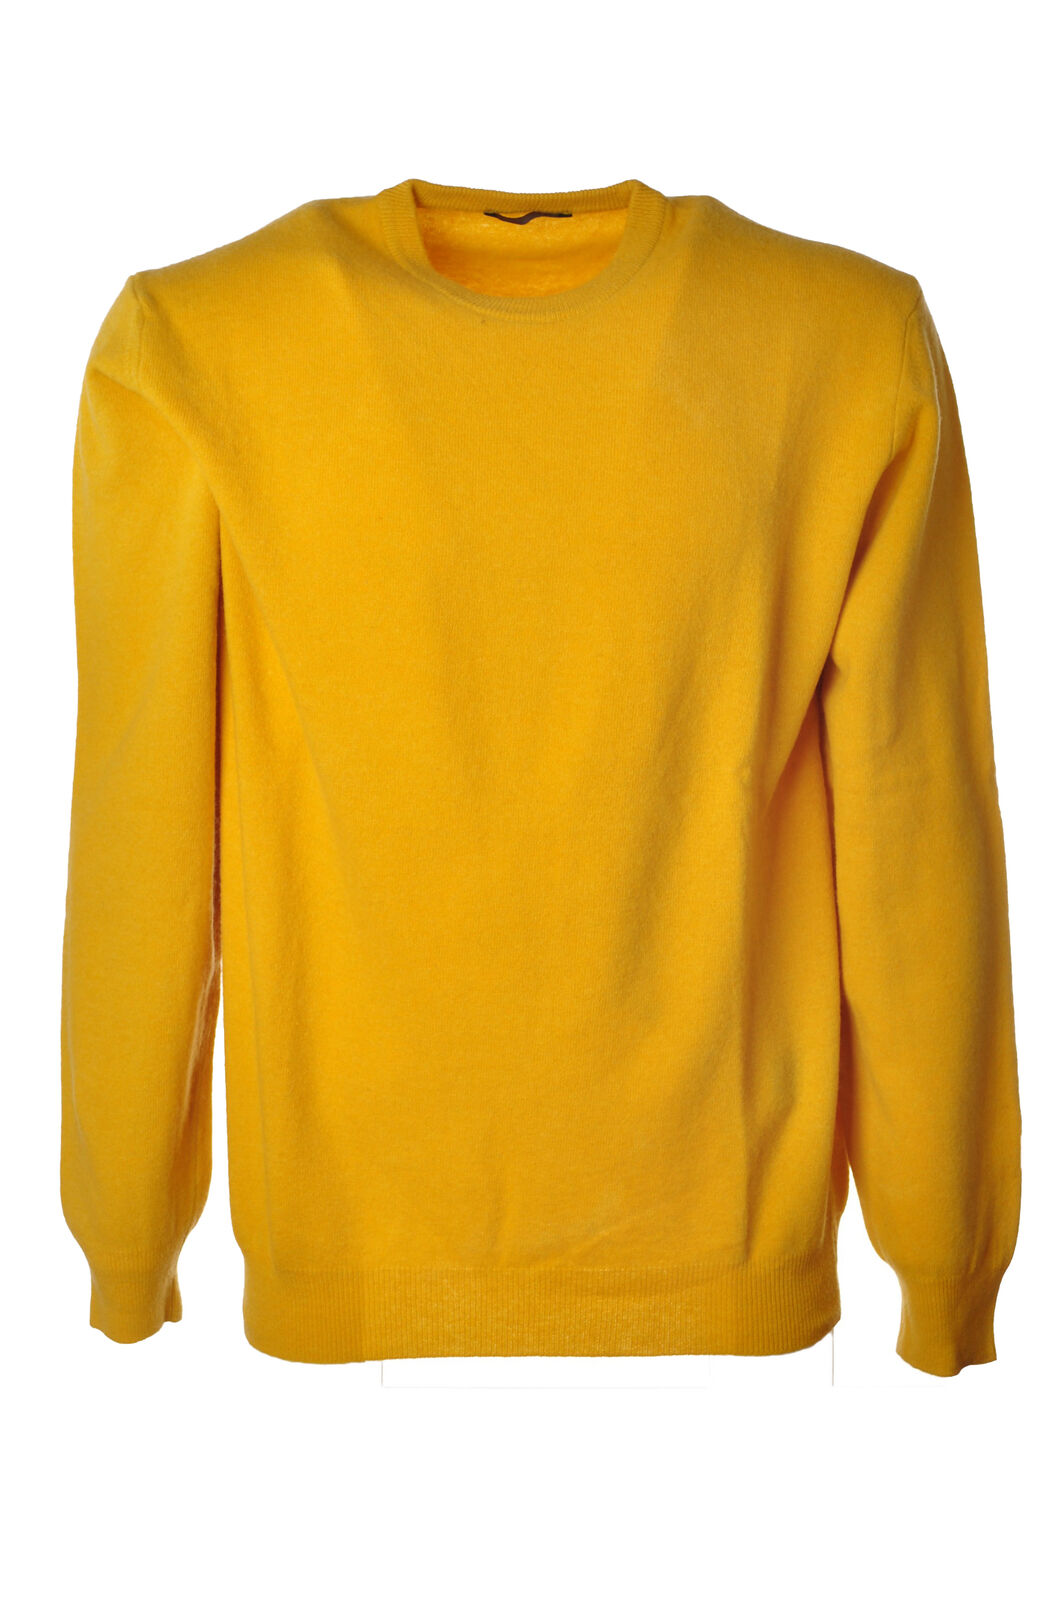 Roberto Collina  -  Sweaters - Male - Gelb - 2801330N173531